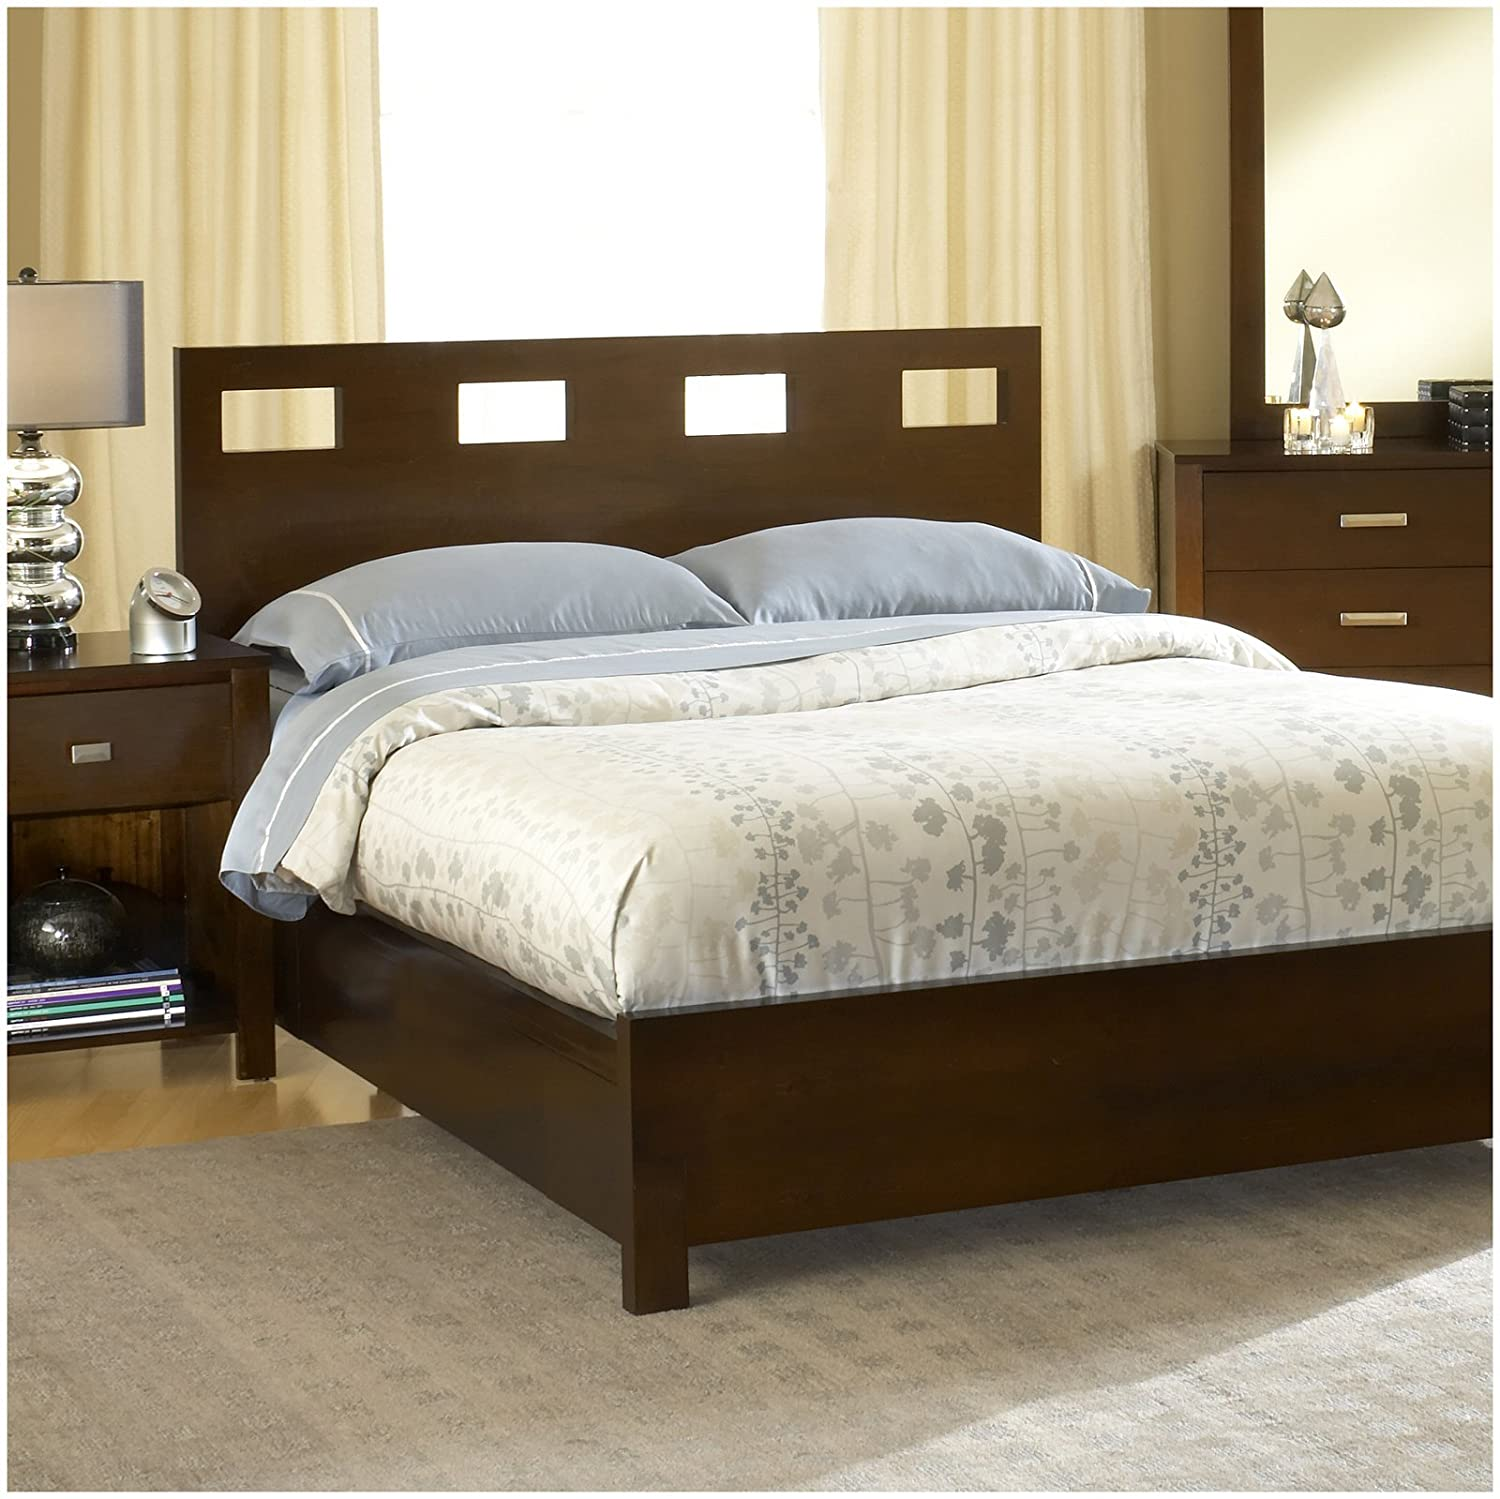 Amazon.com: Modus Furniture RV26F5 Riva Platform Bed, Queen ...